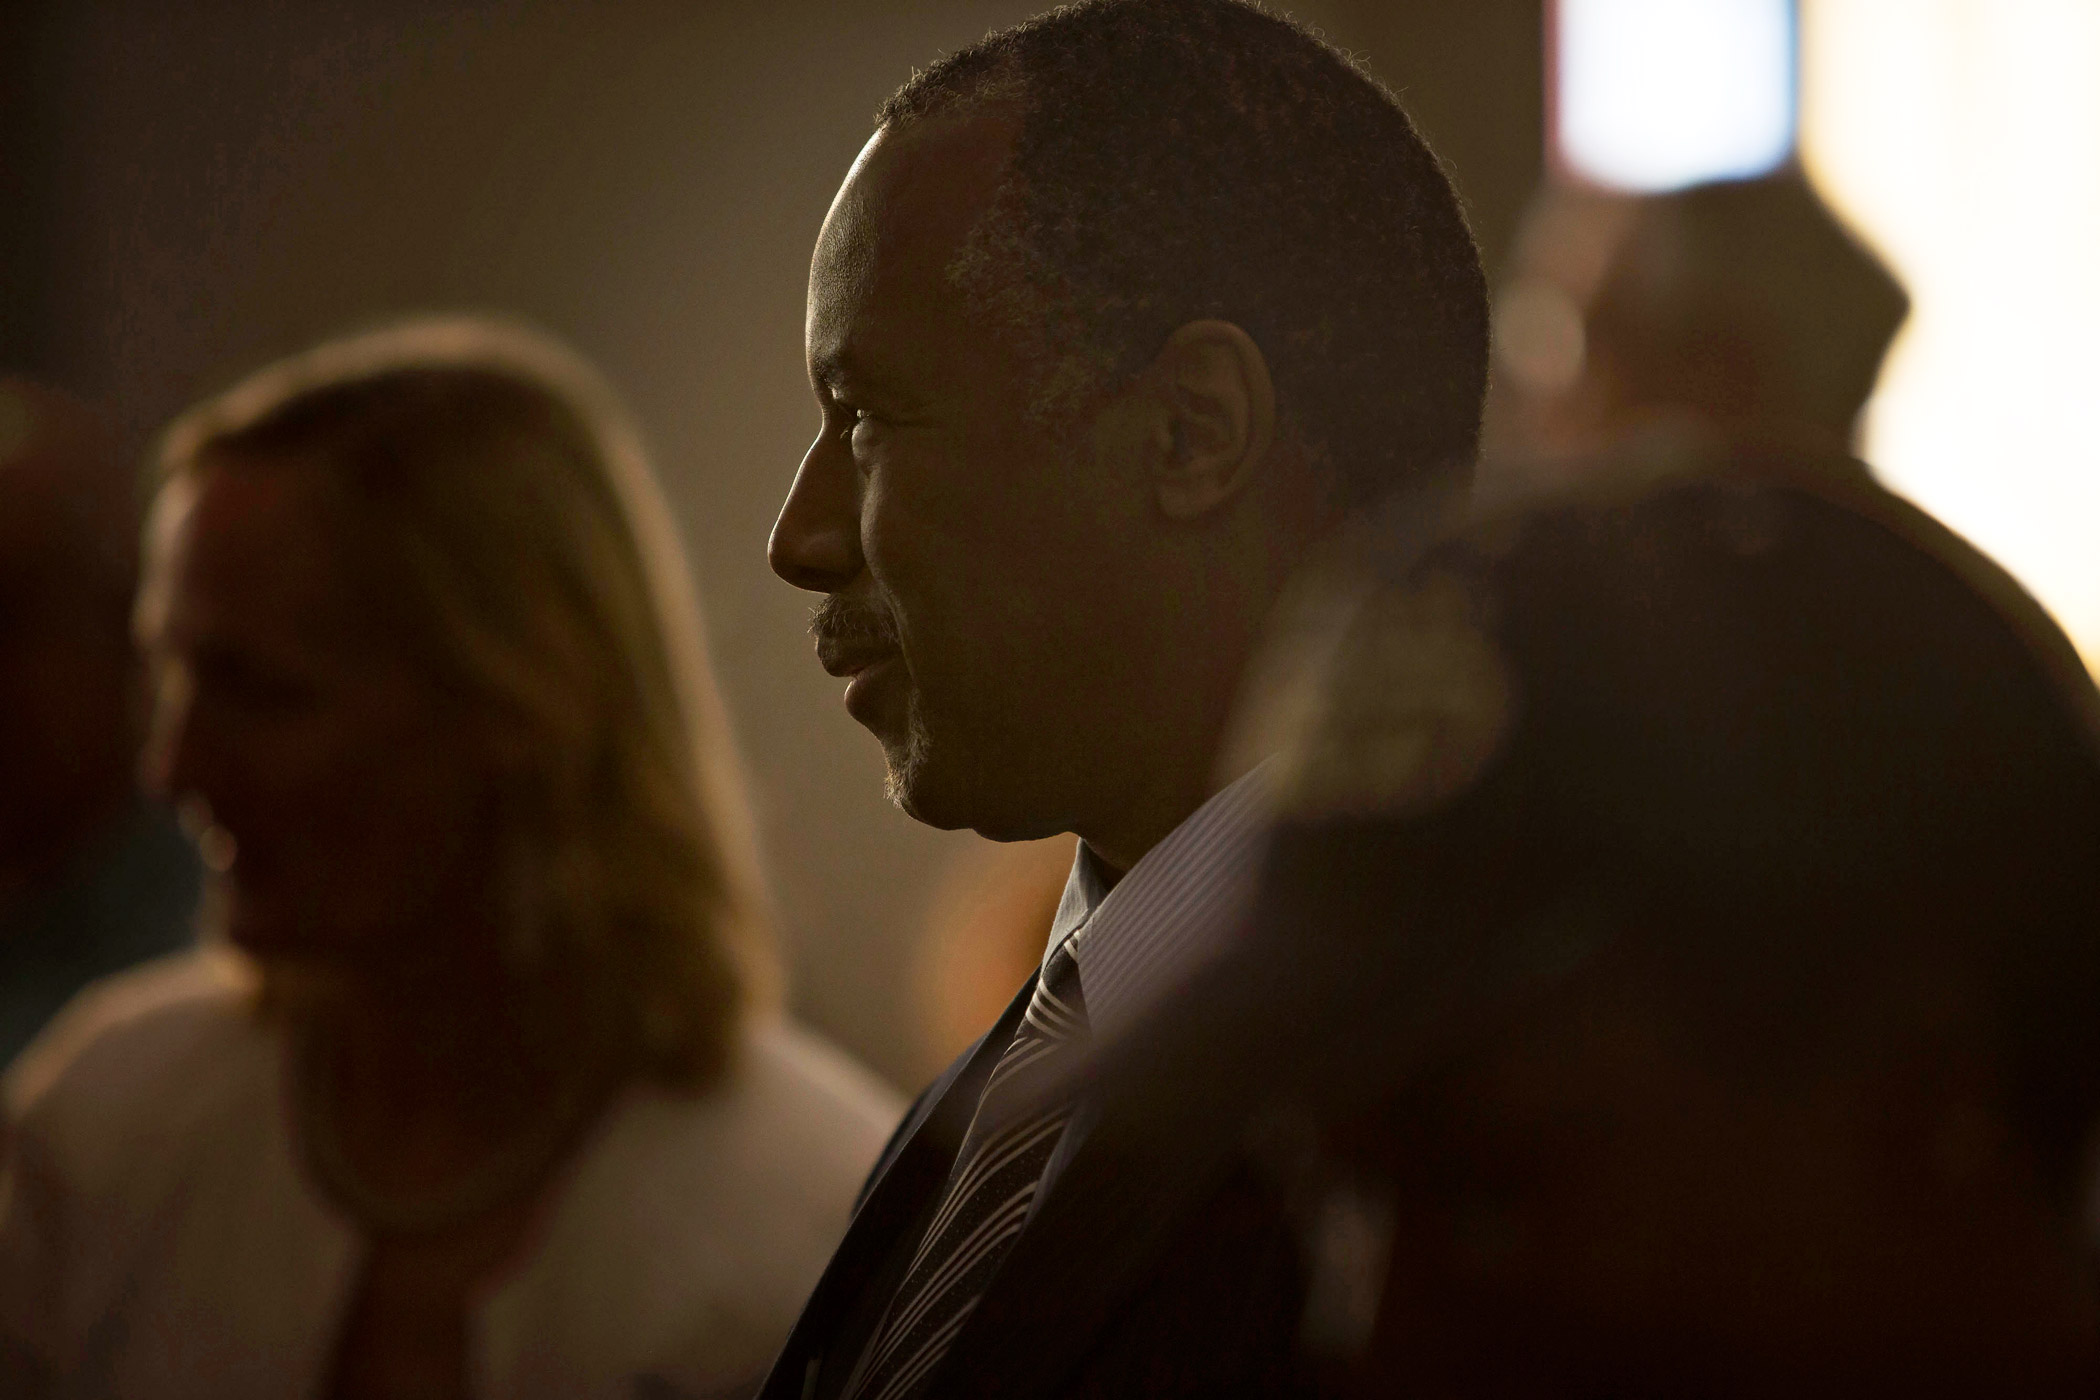 Ben Carson at a service at Maple Street Missionary Baptist Church on Aug. 16, 2015 in Des Moines.